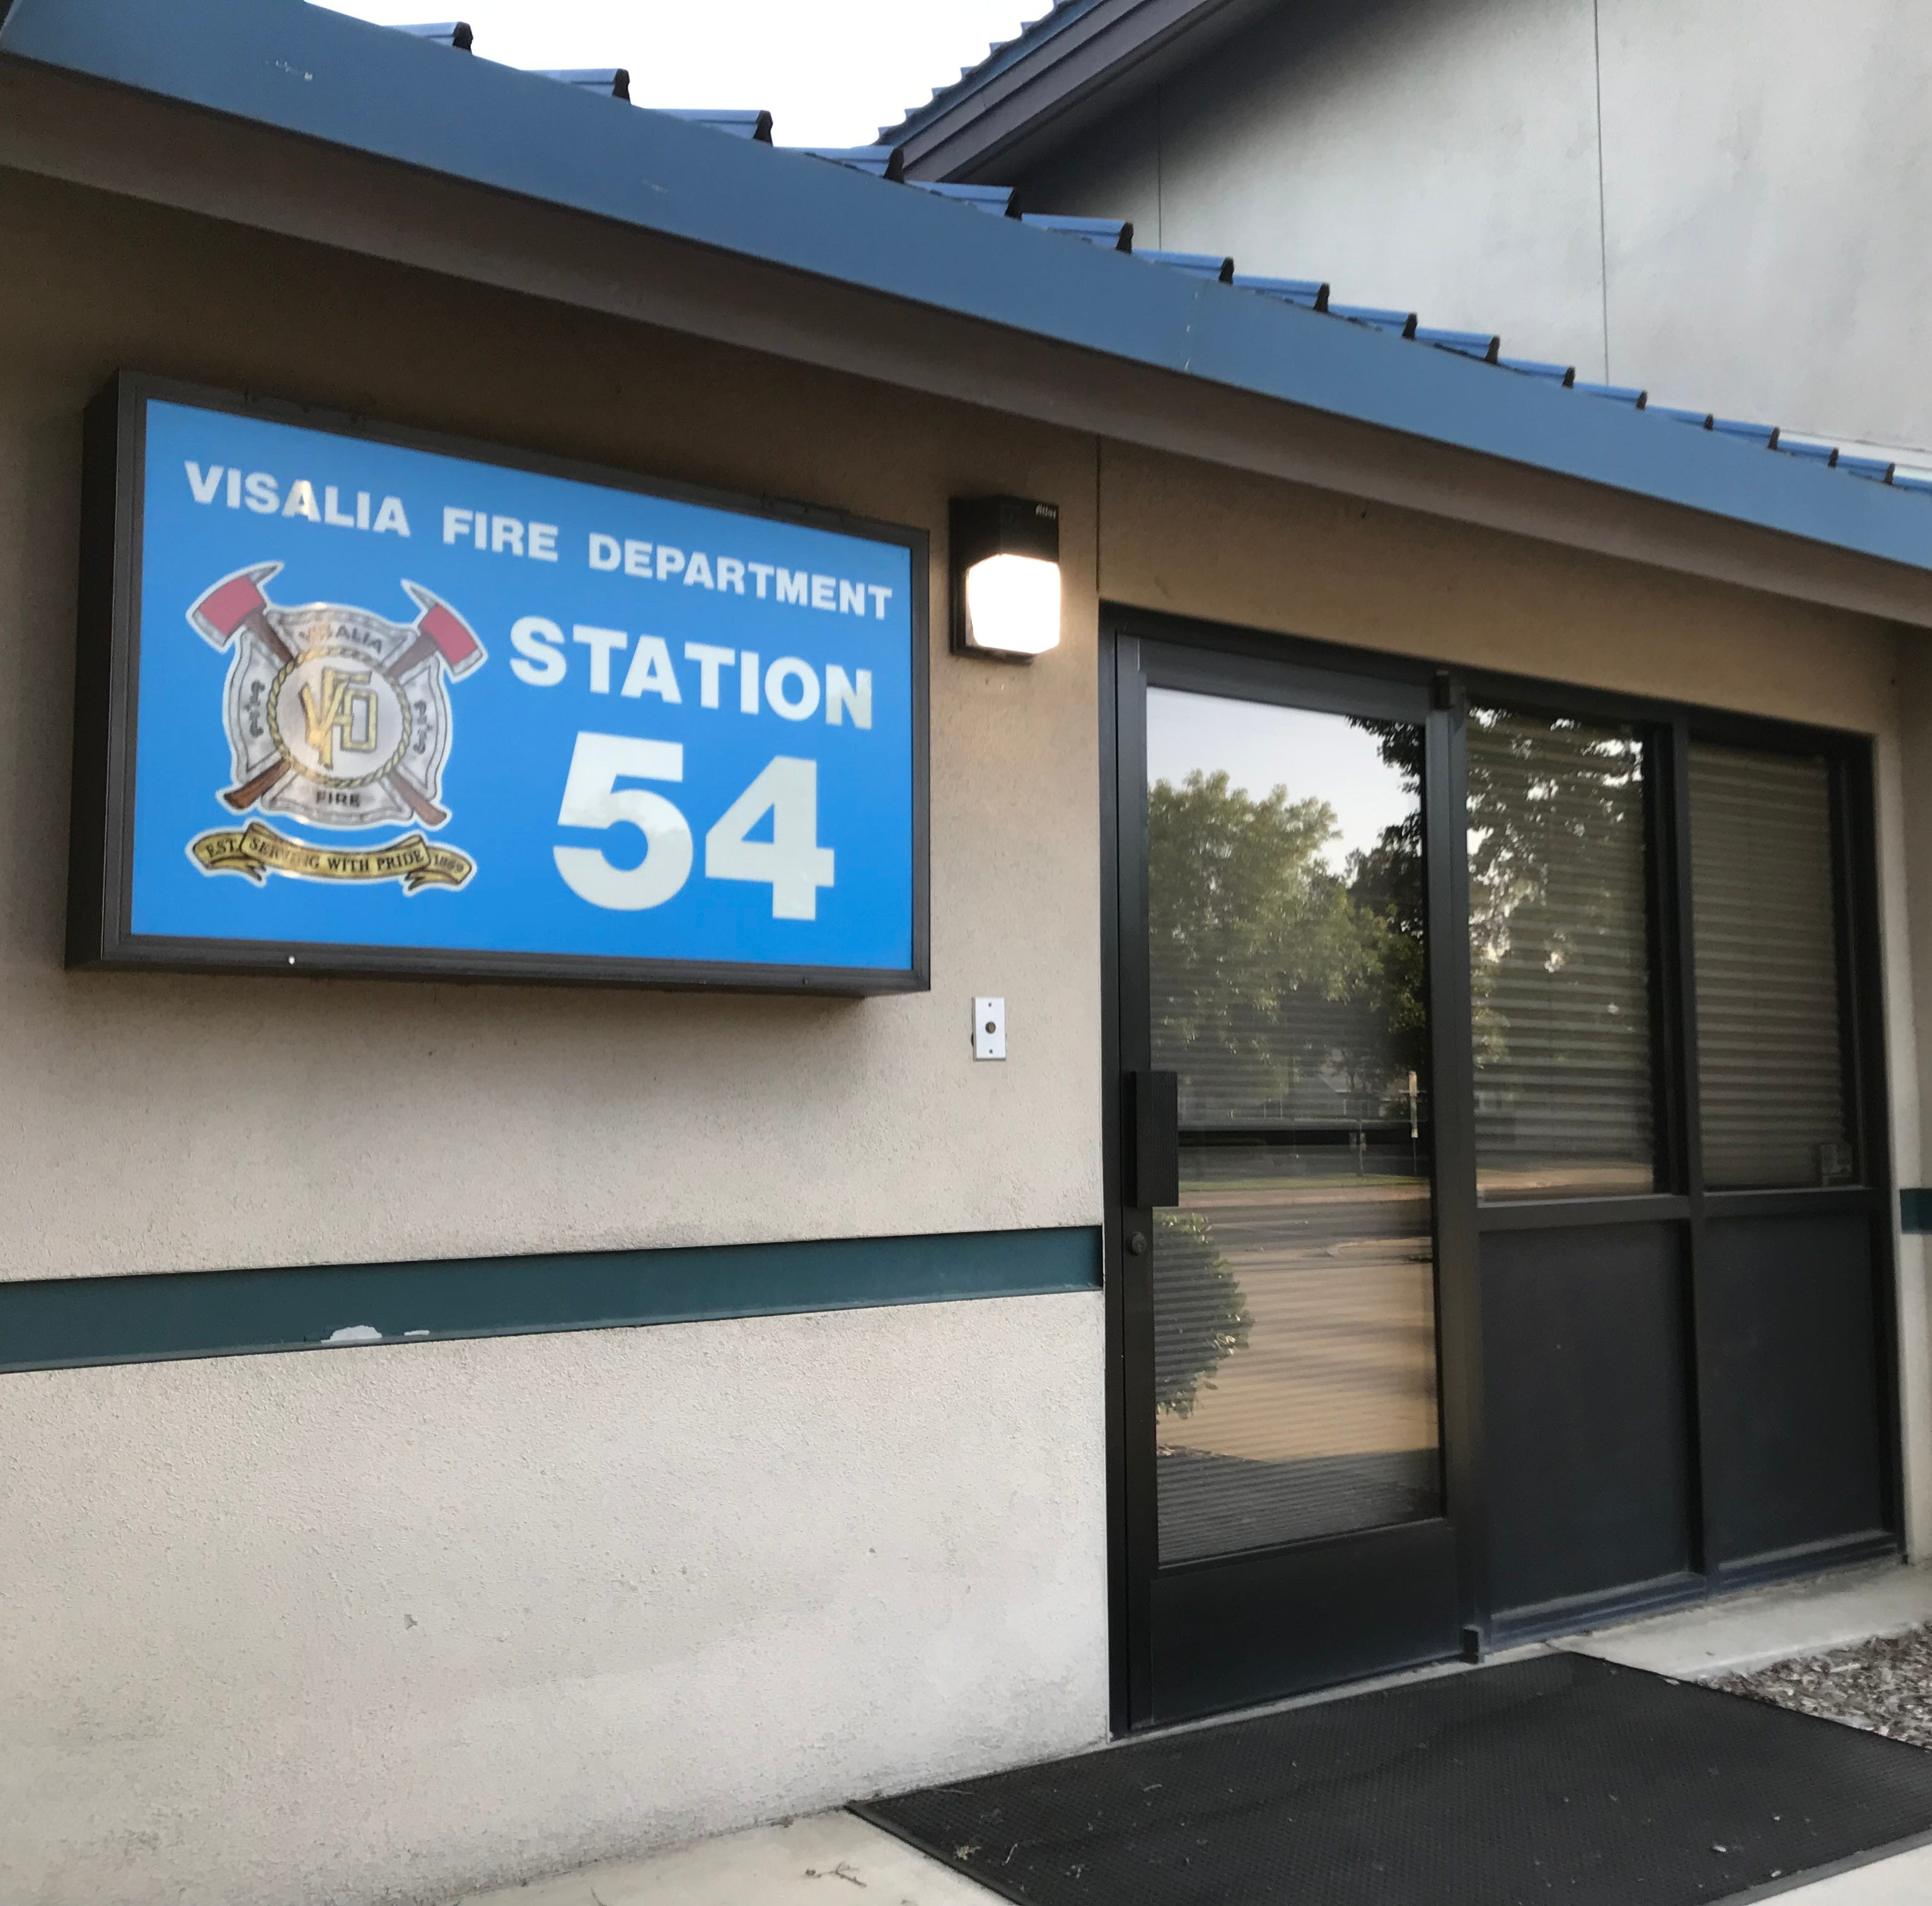 Visalia man hurls hedge clippers at fire station windows, picks fight with motorists